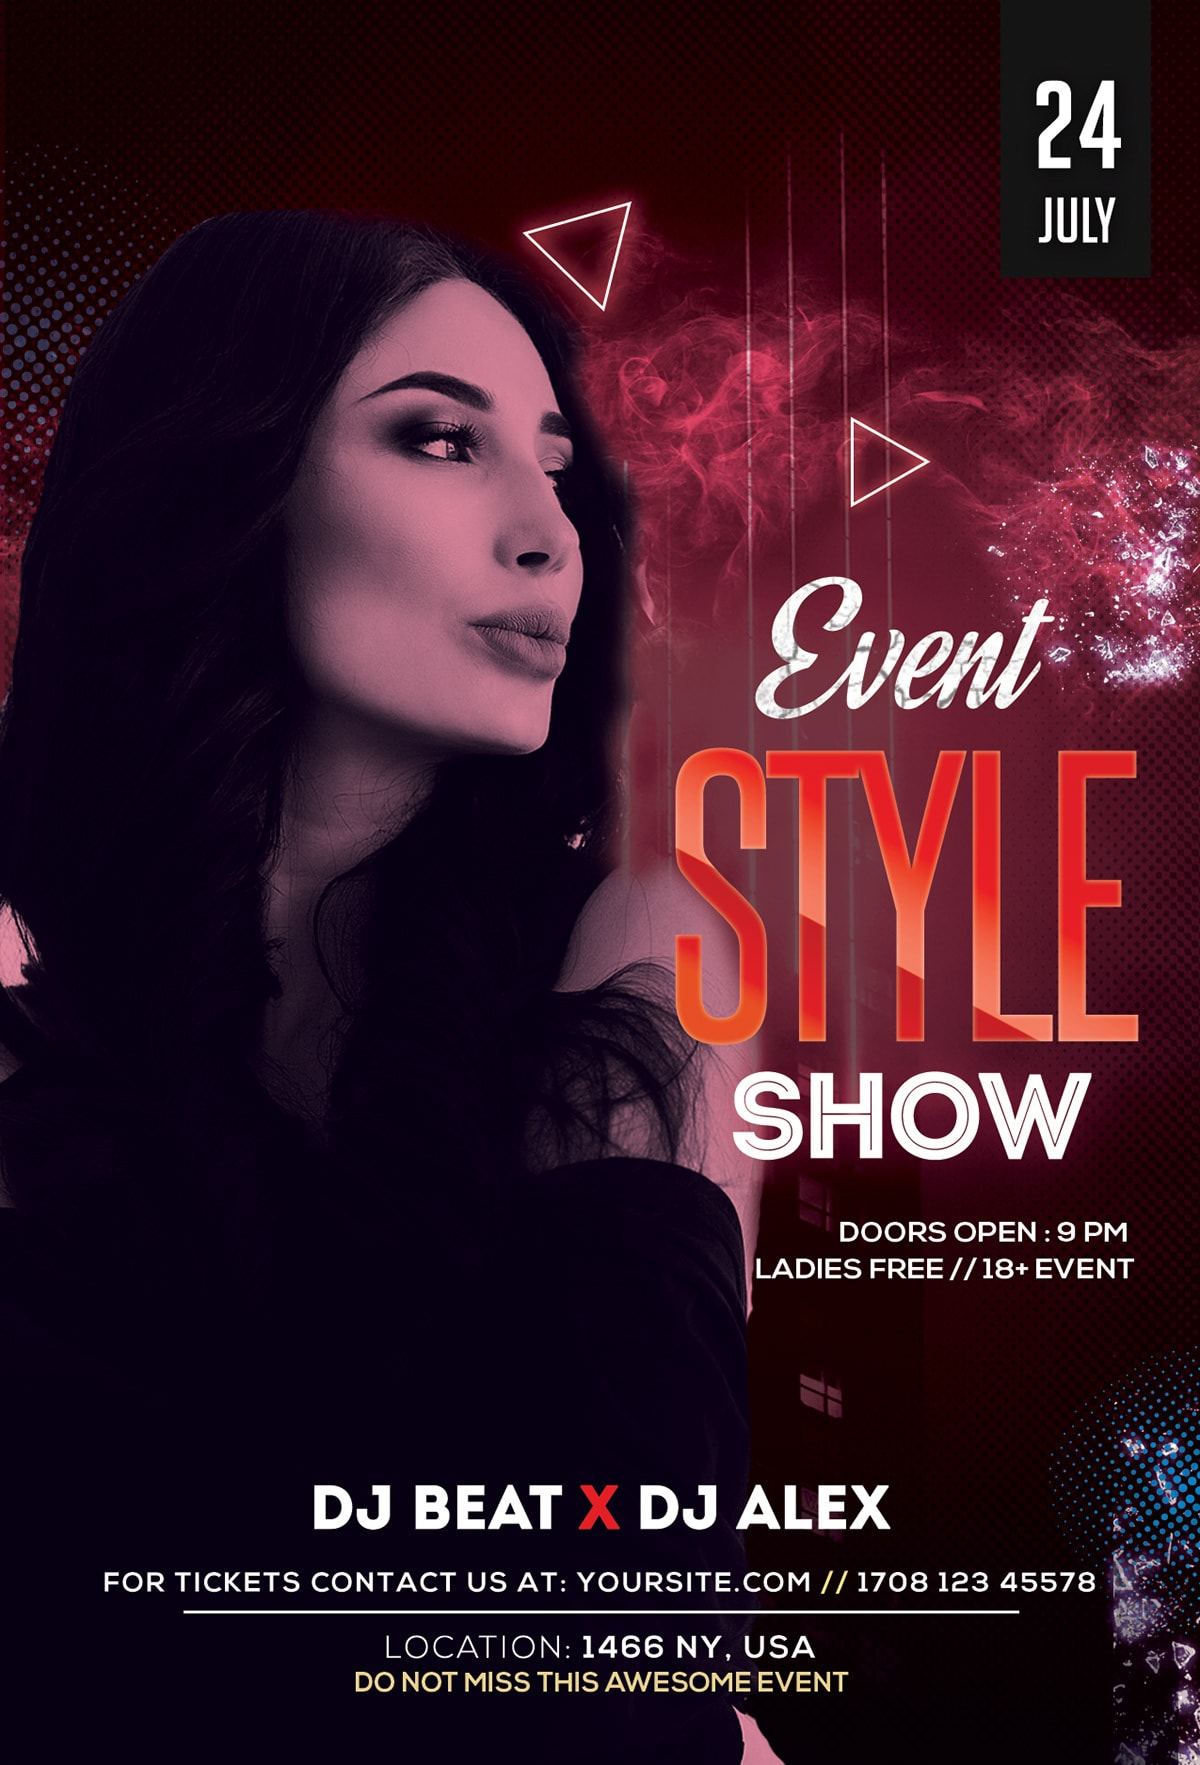 Style Show PSD FREE Flyer Template